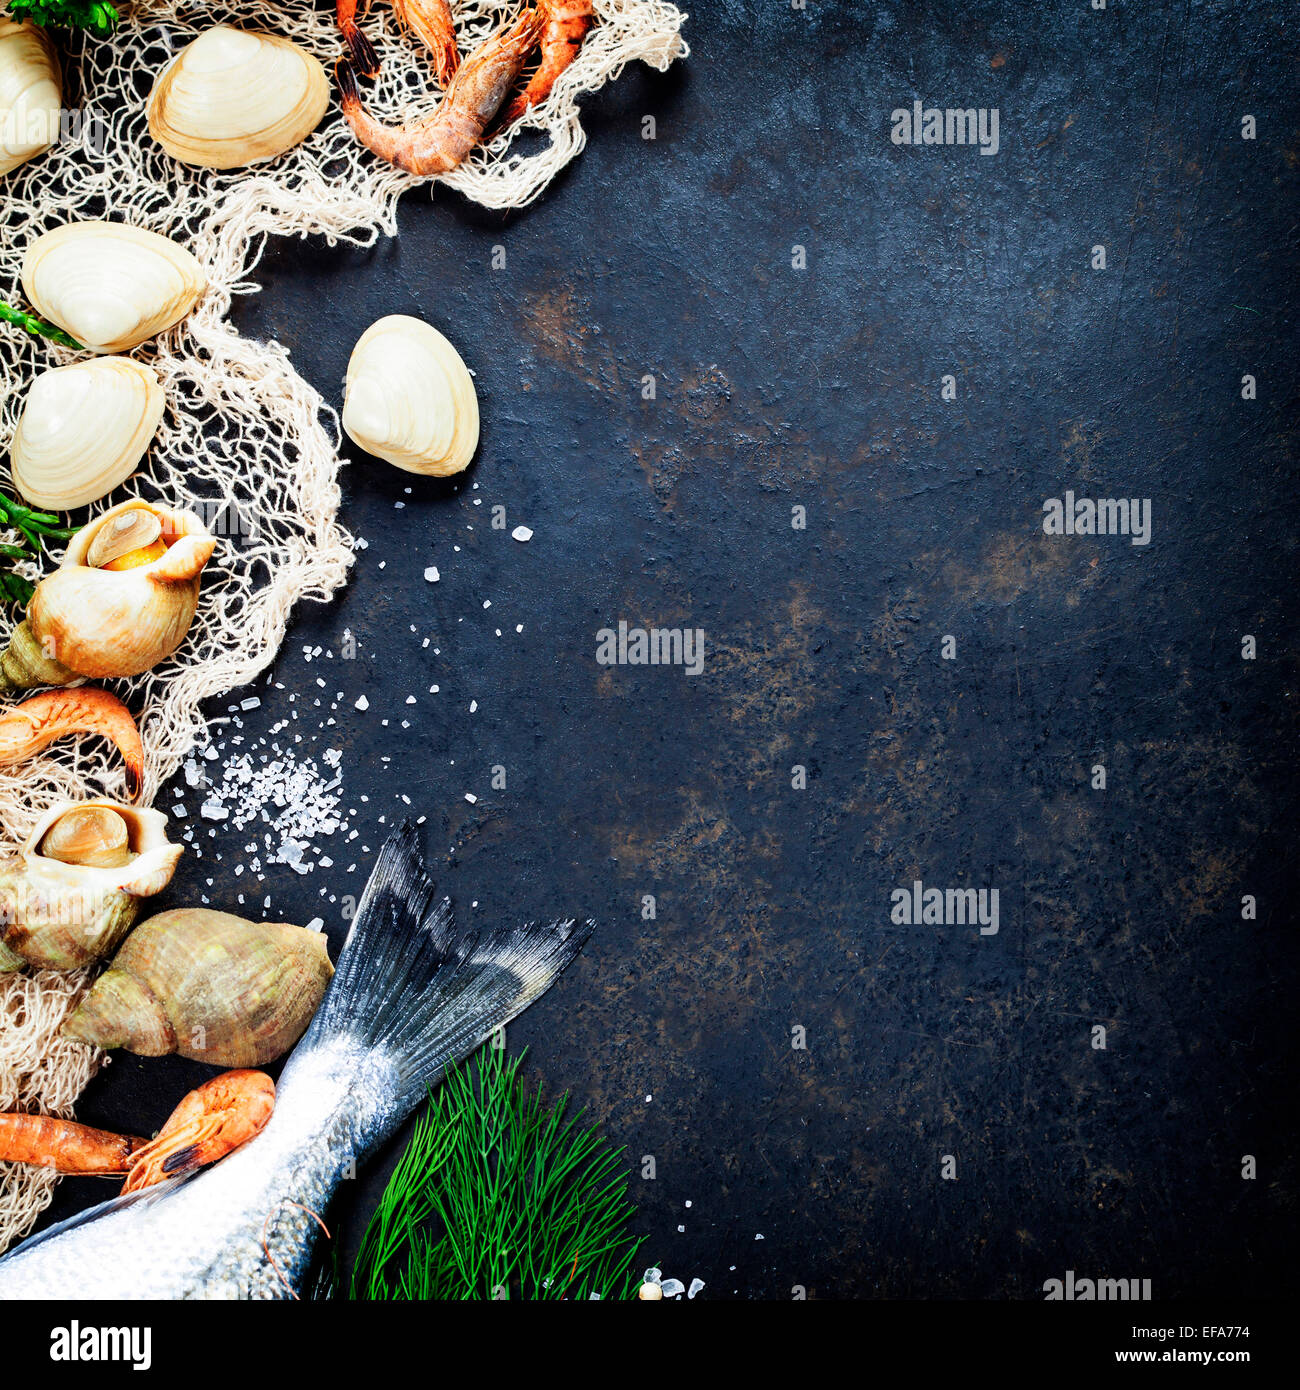 Delicious fresh fish and seafood on dark vintage background. Fish, clams and  shrimps with aromatic herbs, spices - Stock Image